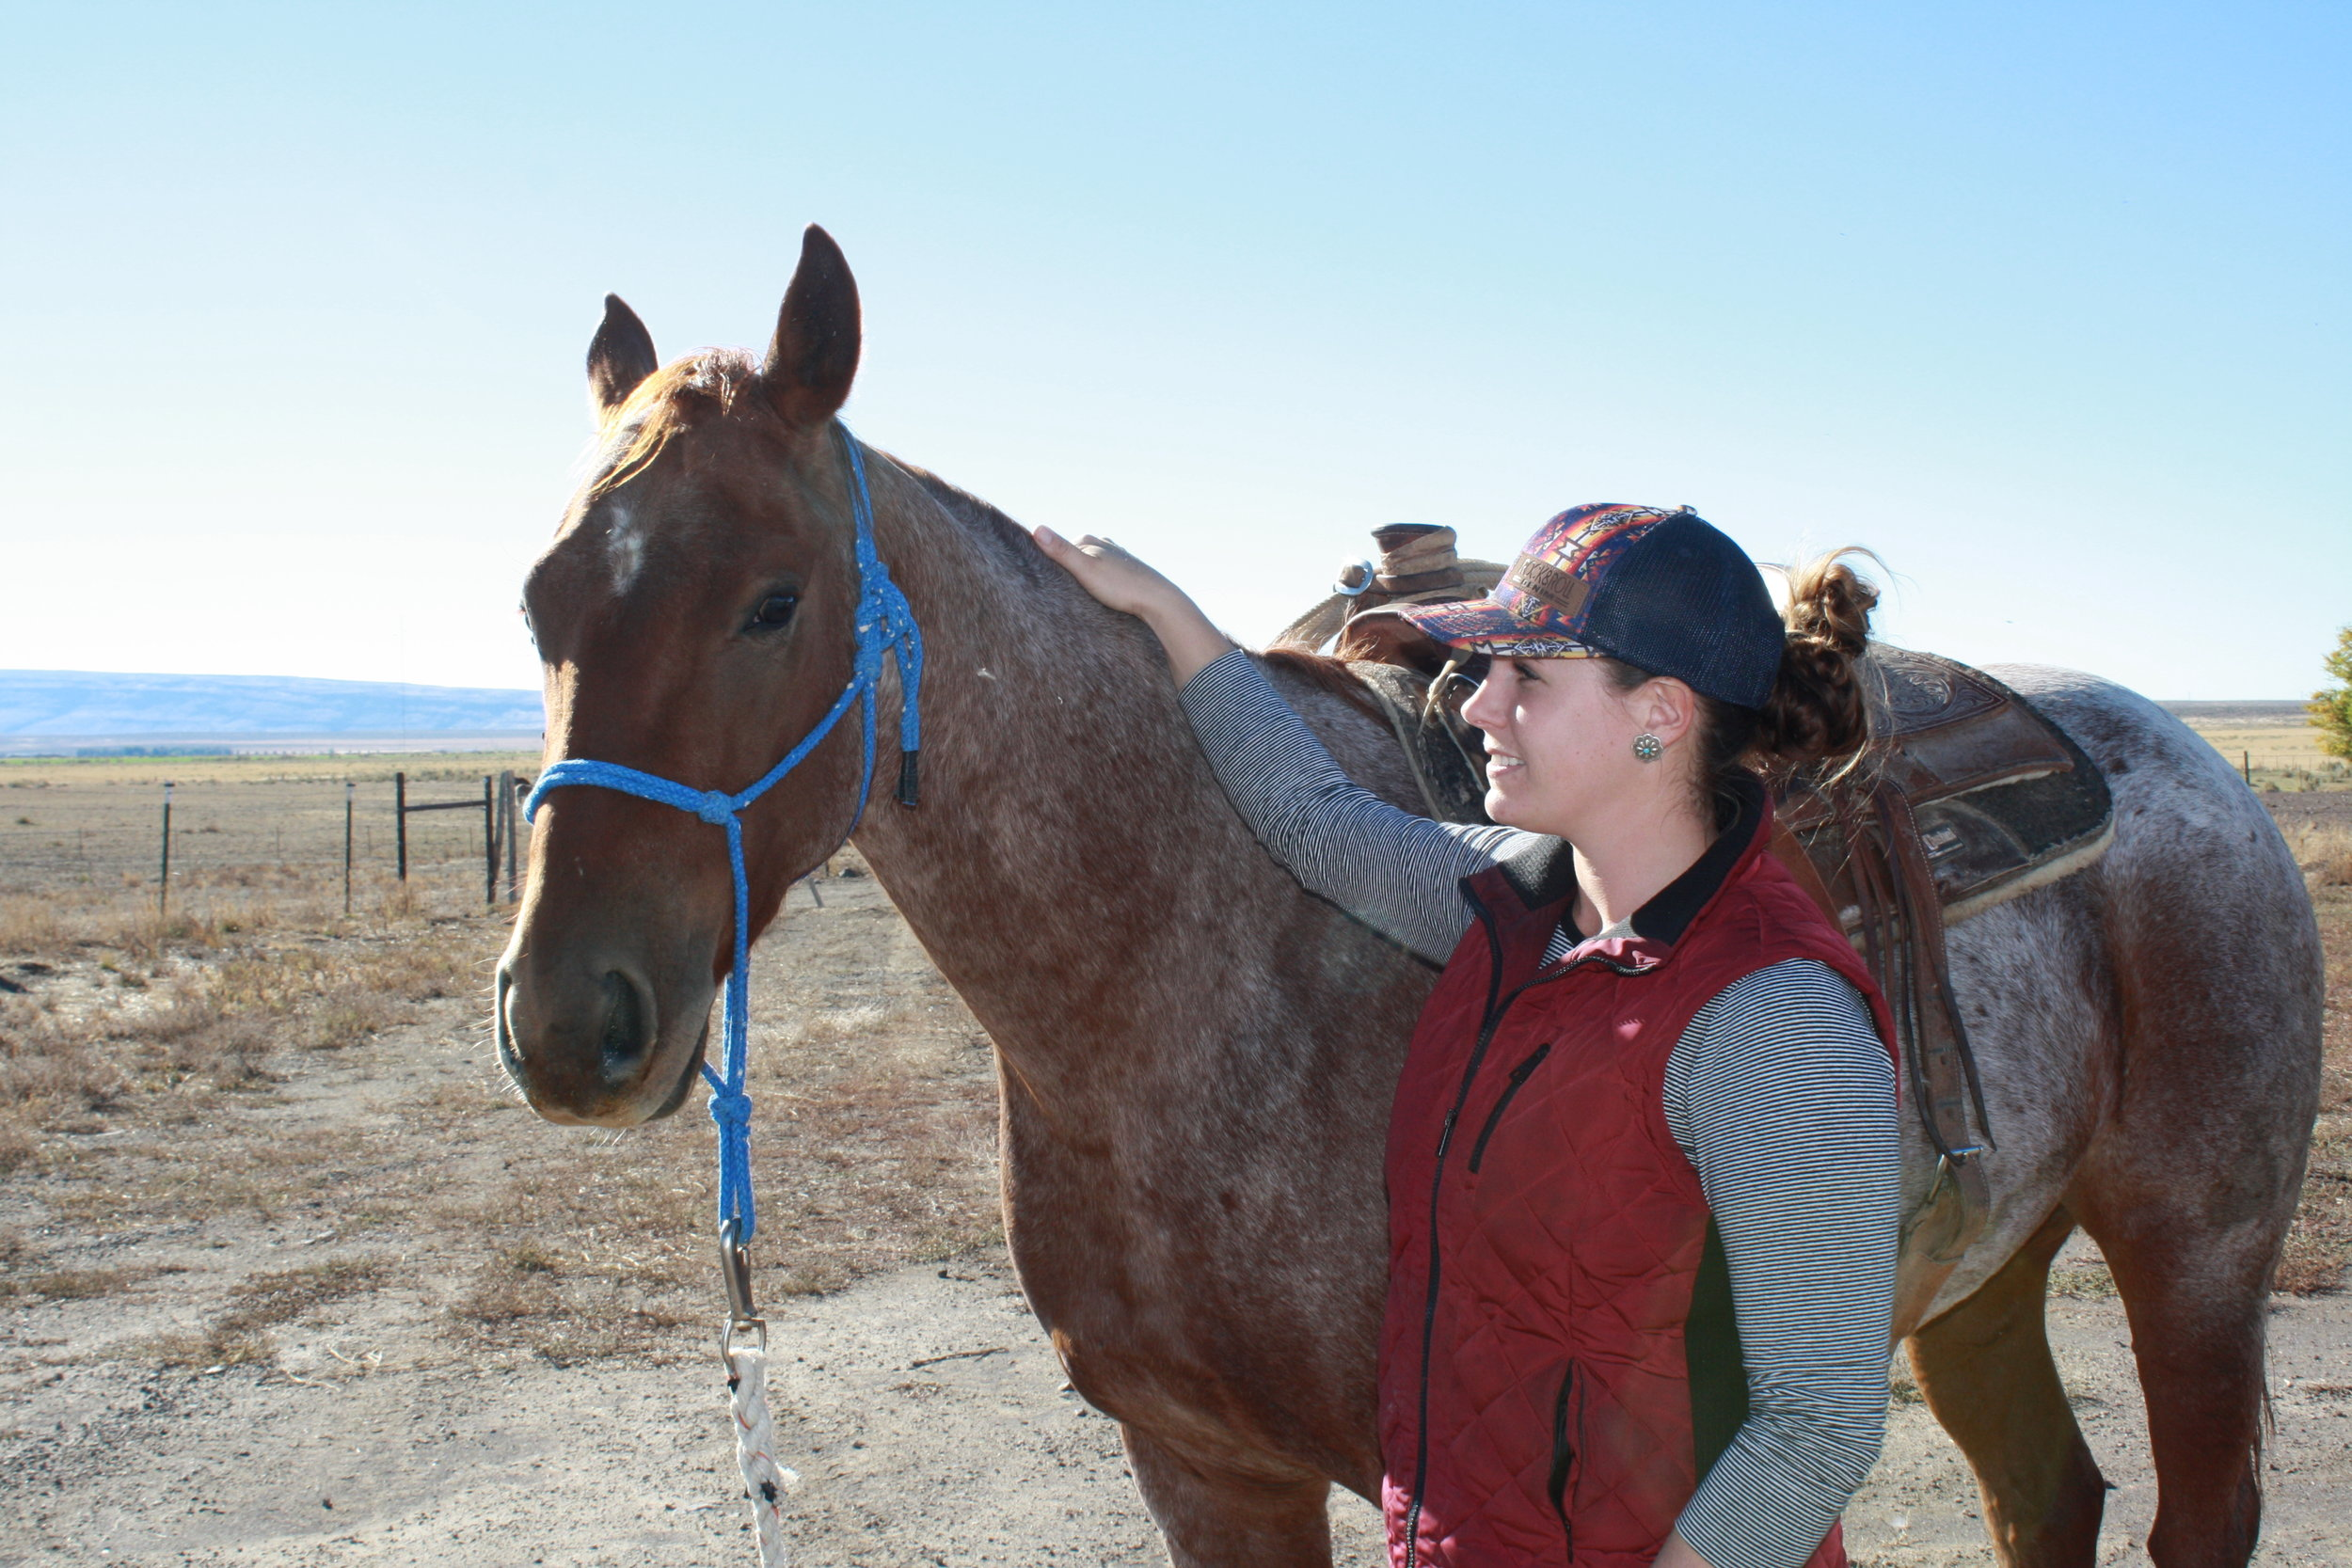 Anderson is employed as a ranch hand at the Jack Ranch near Rogerson, Idaho.